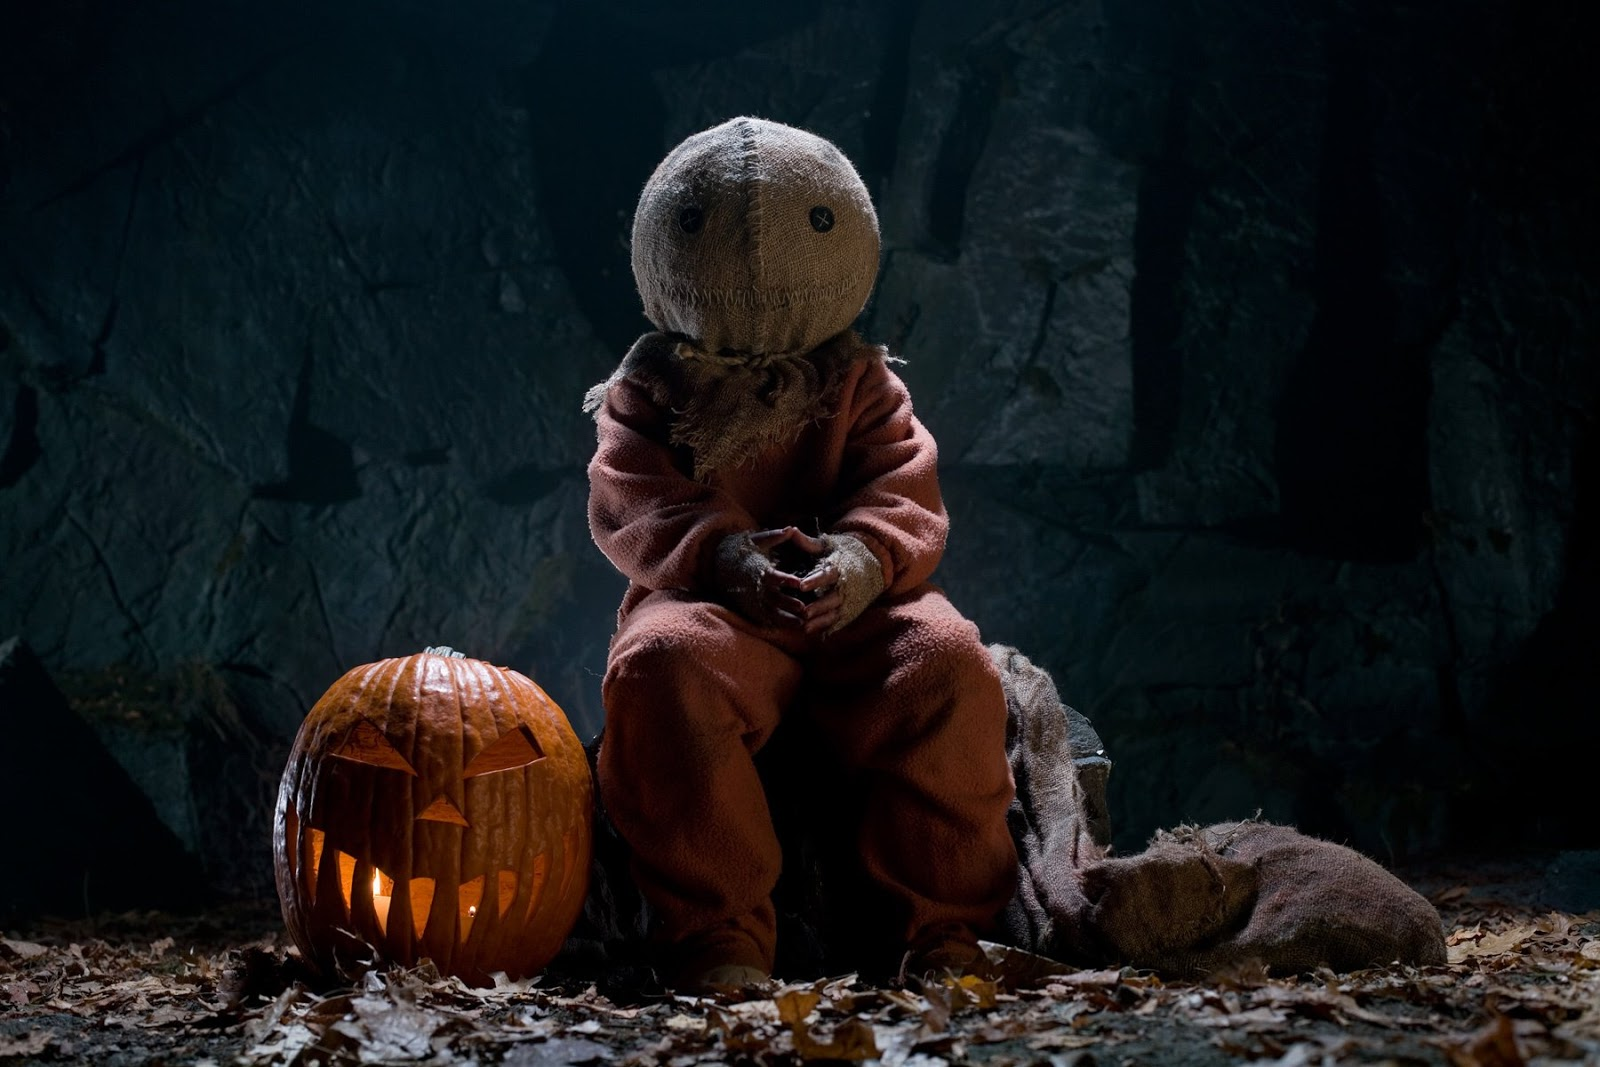 Halloween wallpaper the handpicked creepy horrible evil scary wallpapers for halloween celebration decorate you desktop tablets iphone smart phones and mobiles voltagebd Gallery